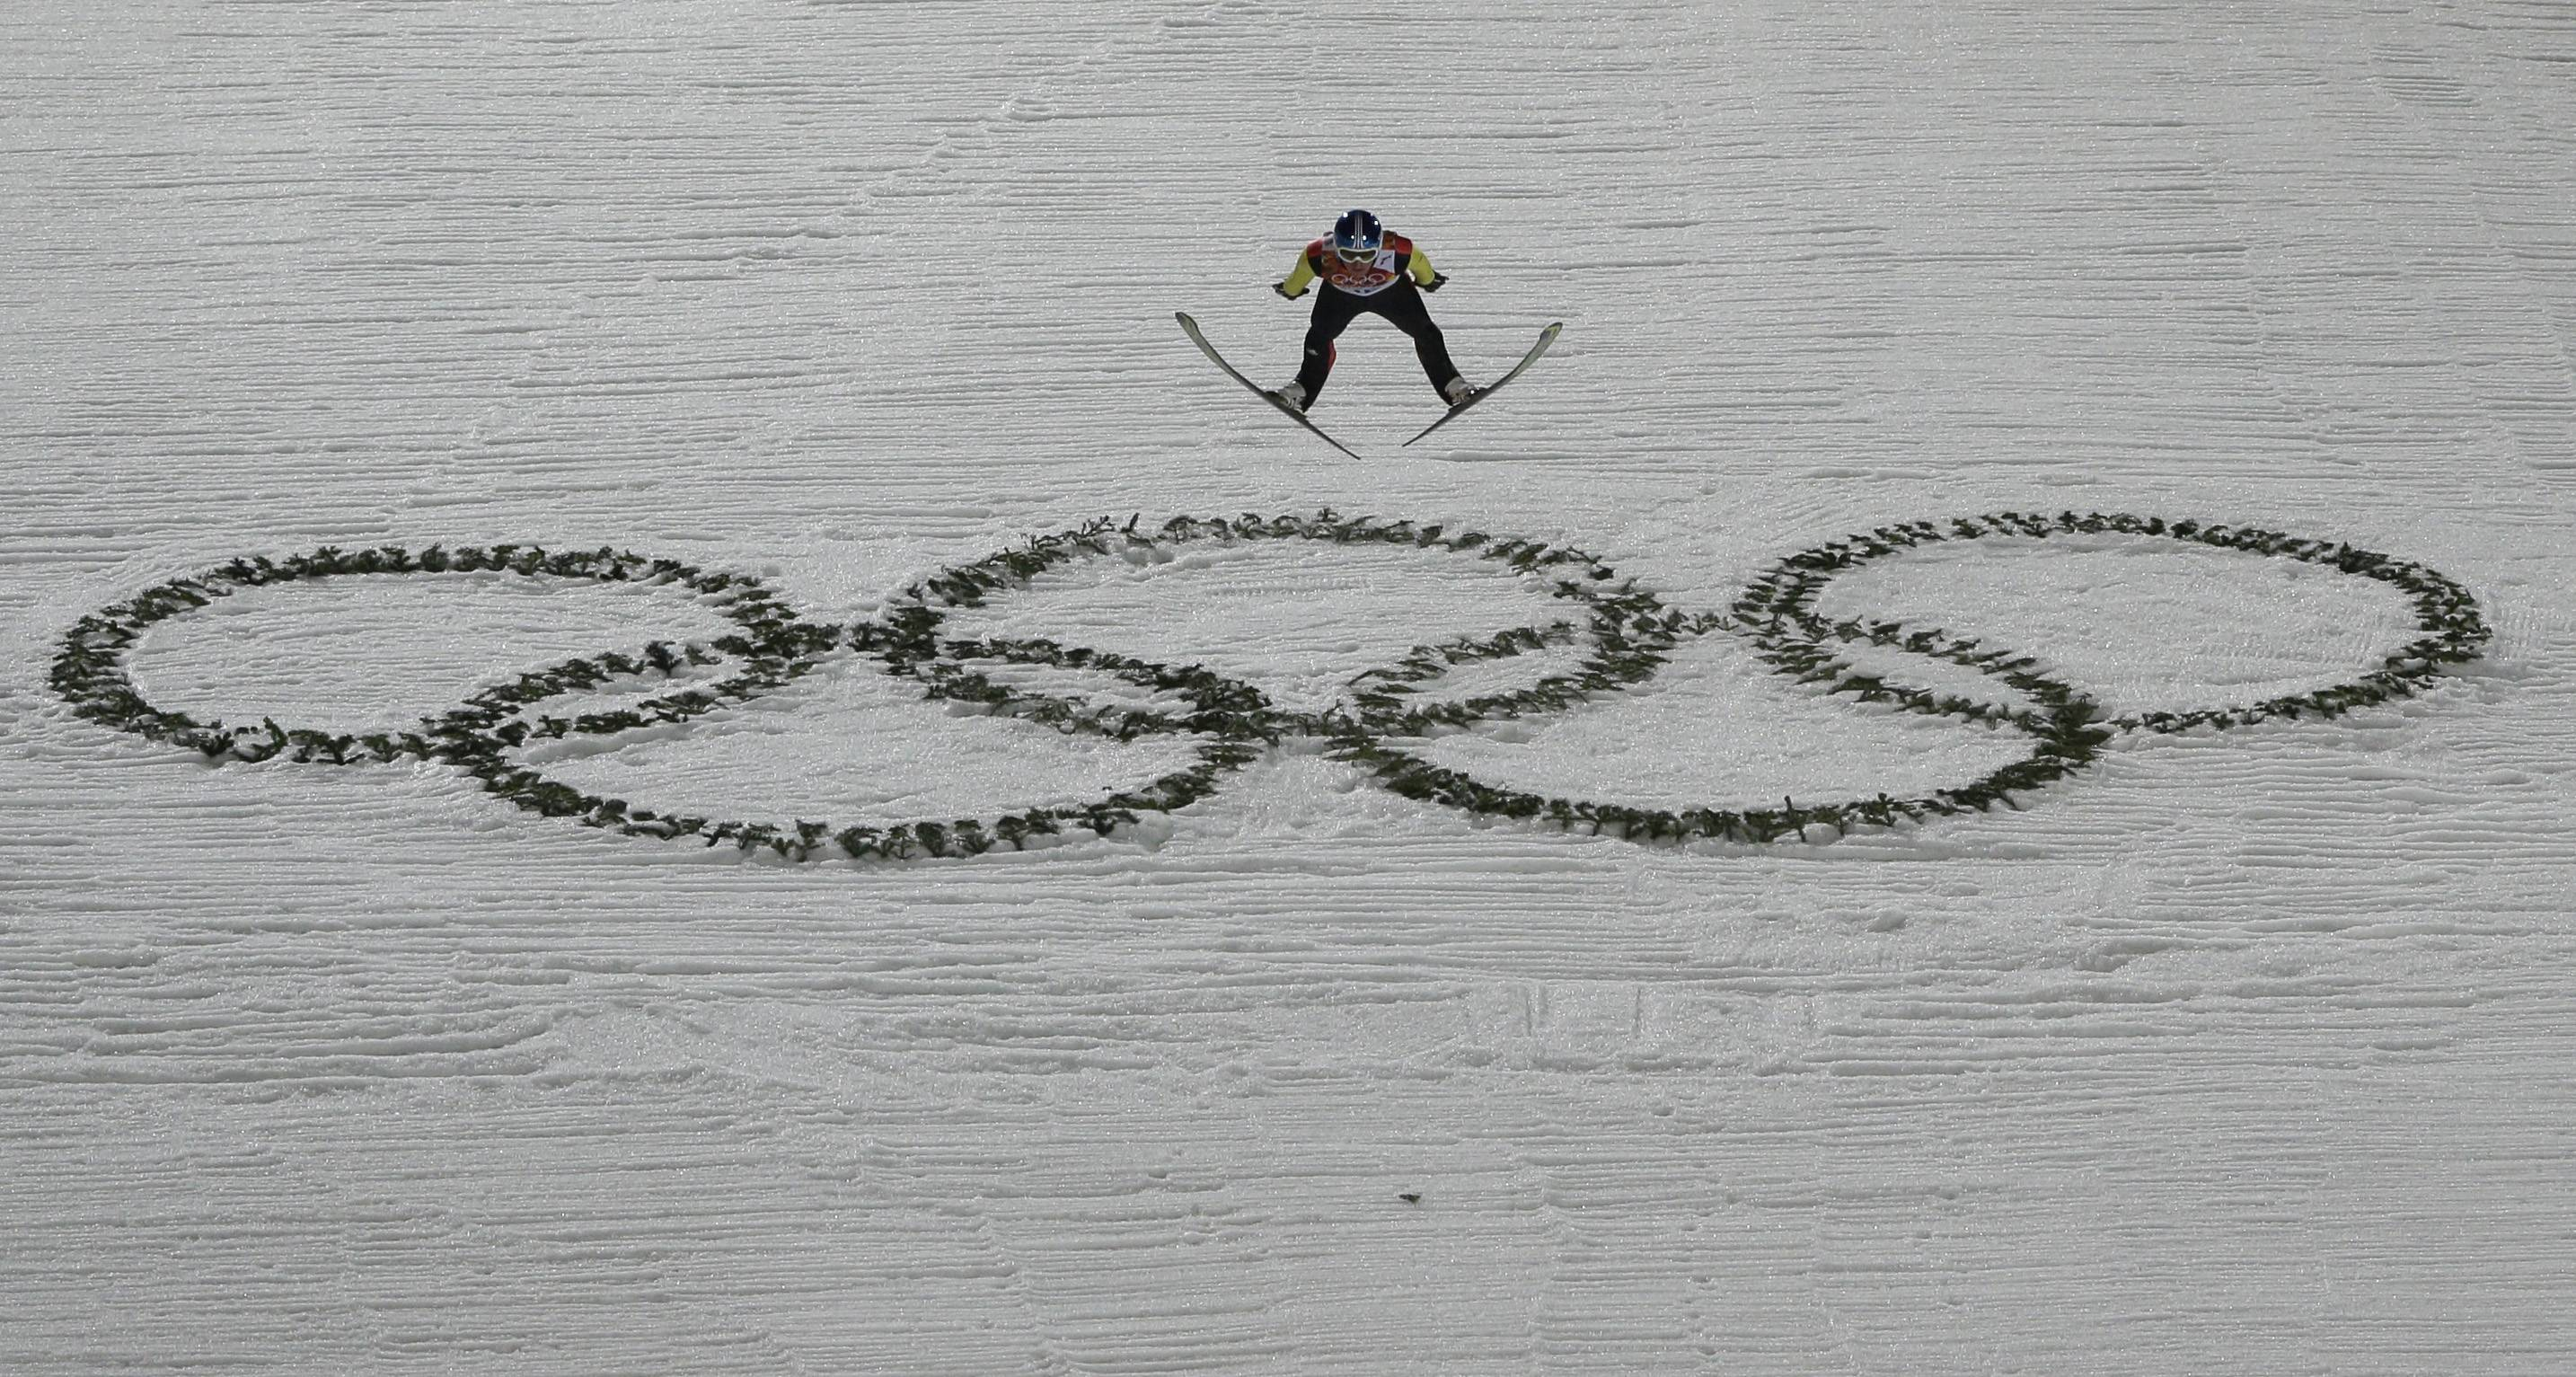 Germany's Severin Freund makes an attempt during the ski jumping large hill final at the 2014 Winter Olympics, Saturday, Feb. 15, 2014, in Krasnaya Polyana, Russia.